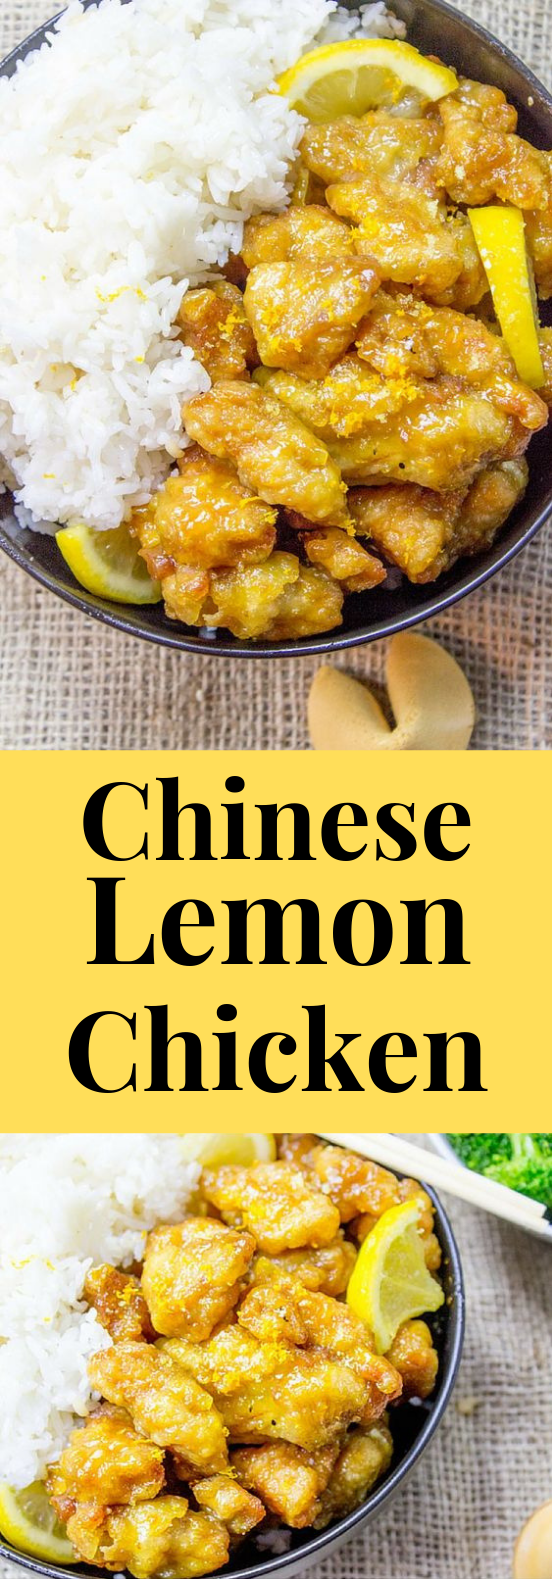 CHINESE LEMON CHICKEN RECIPE #Lemon #Chinese